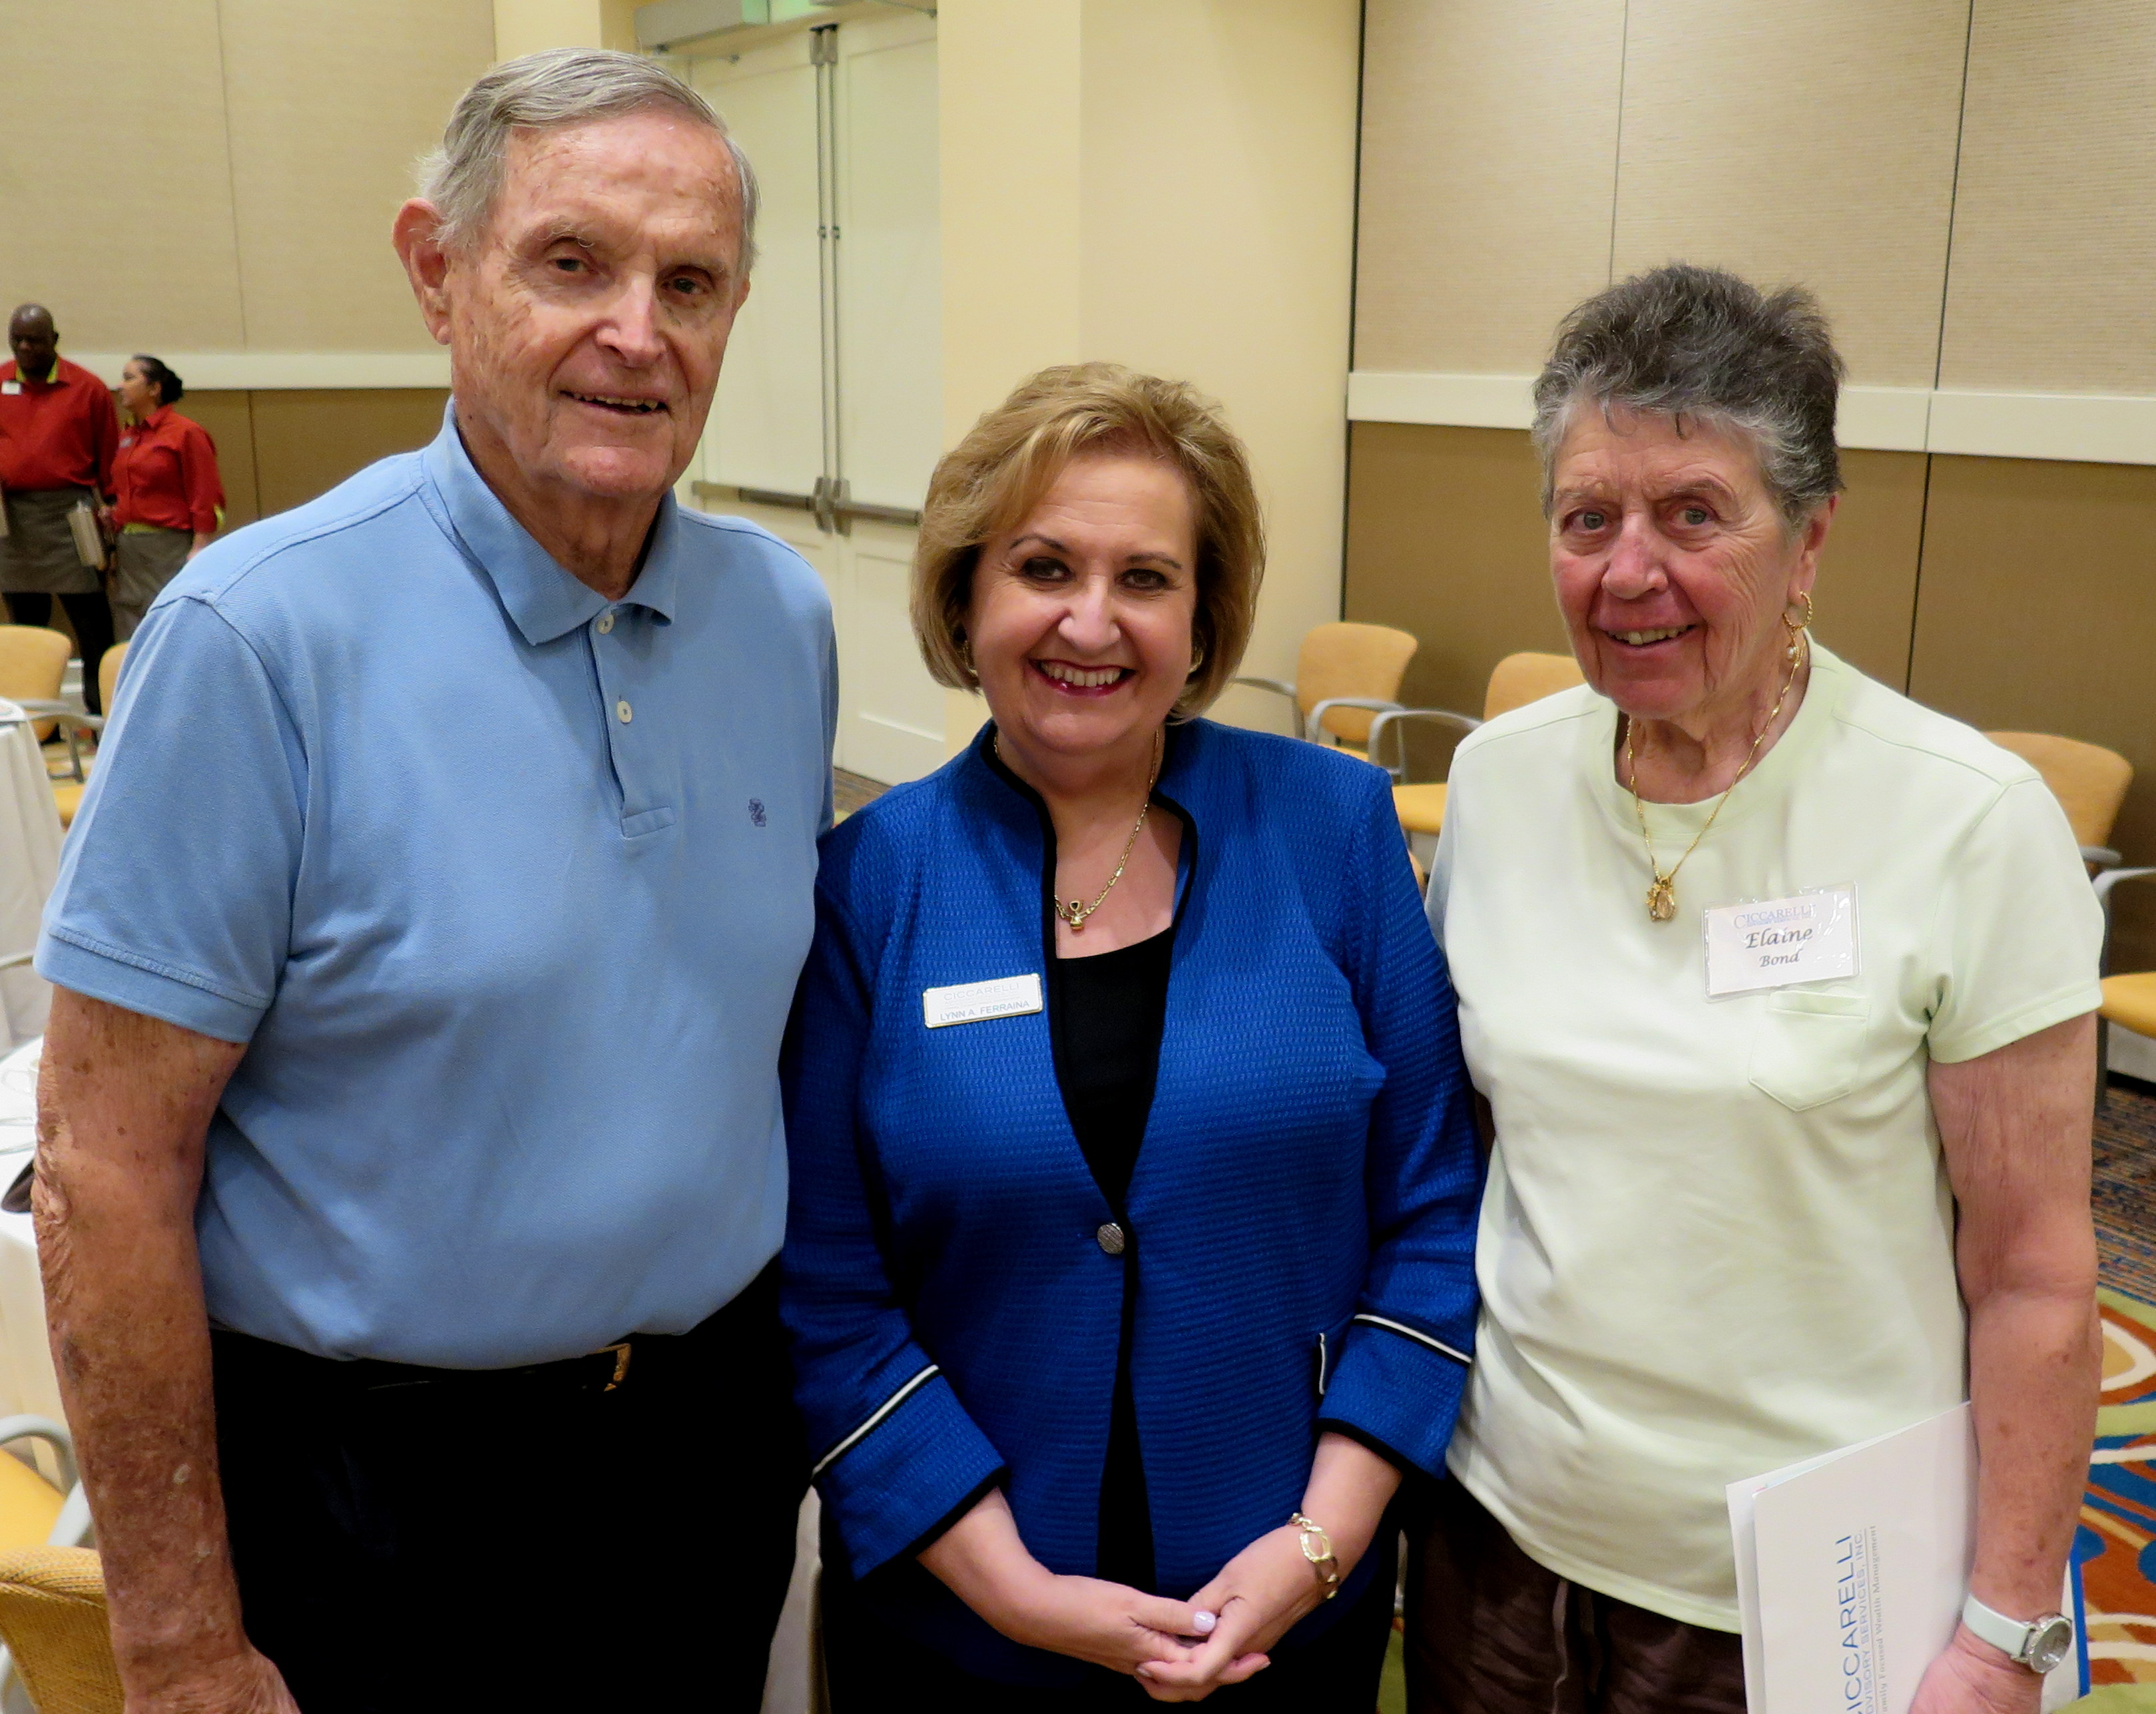 Bill Bond, Lynn Ferraina, Elaine Bond